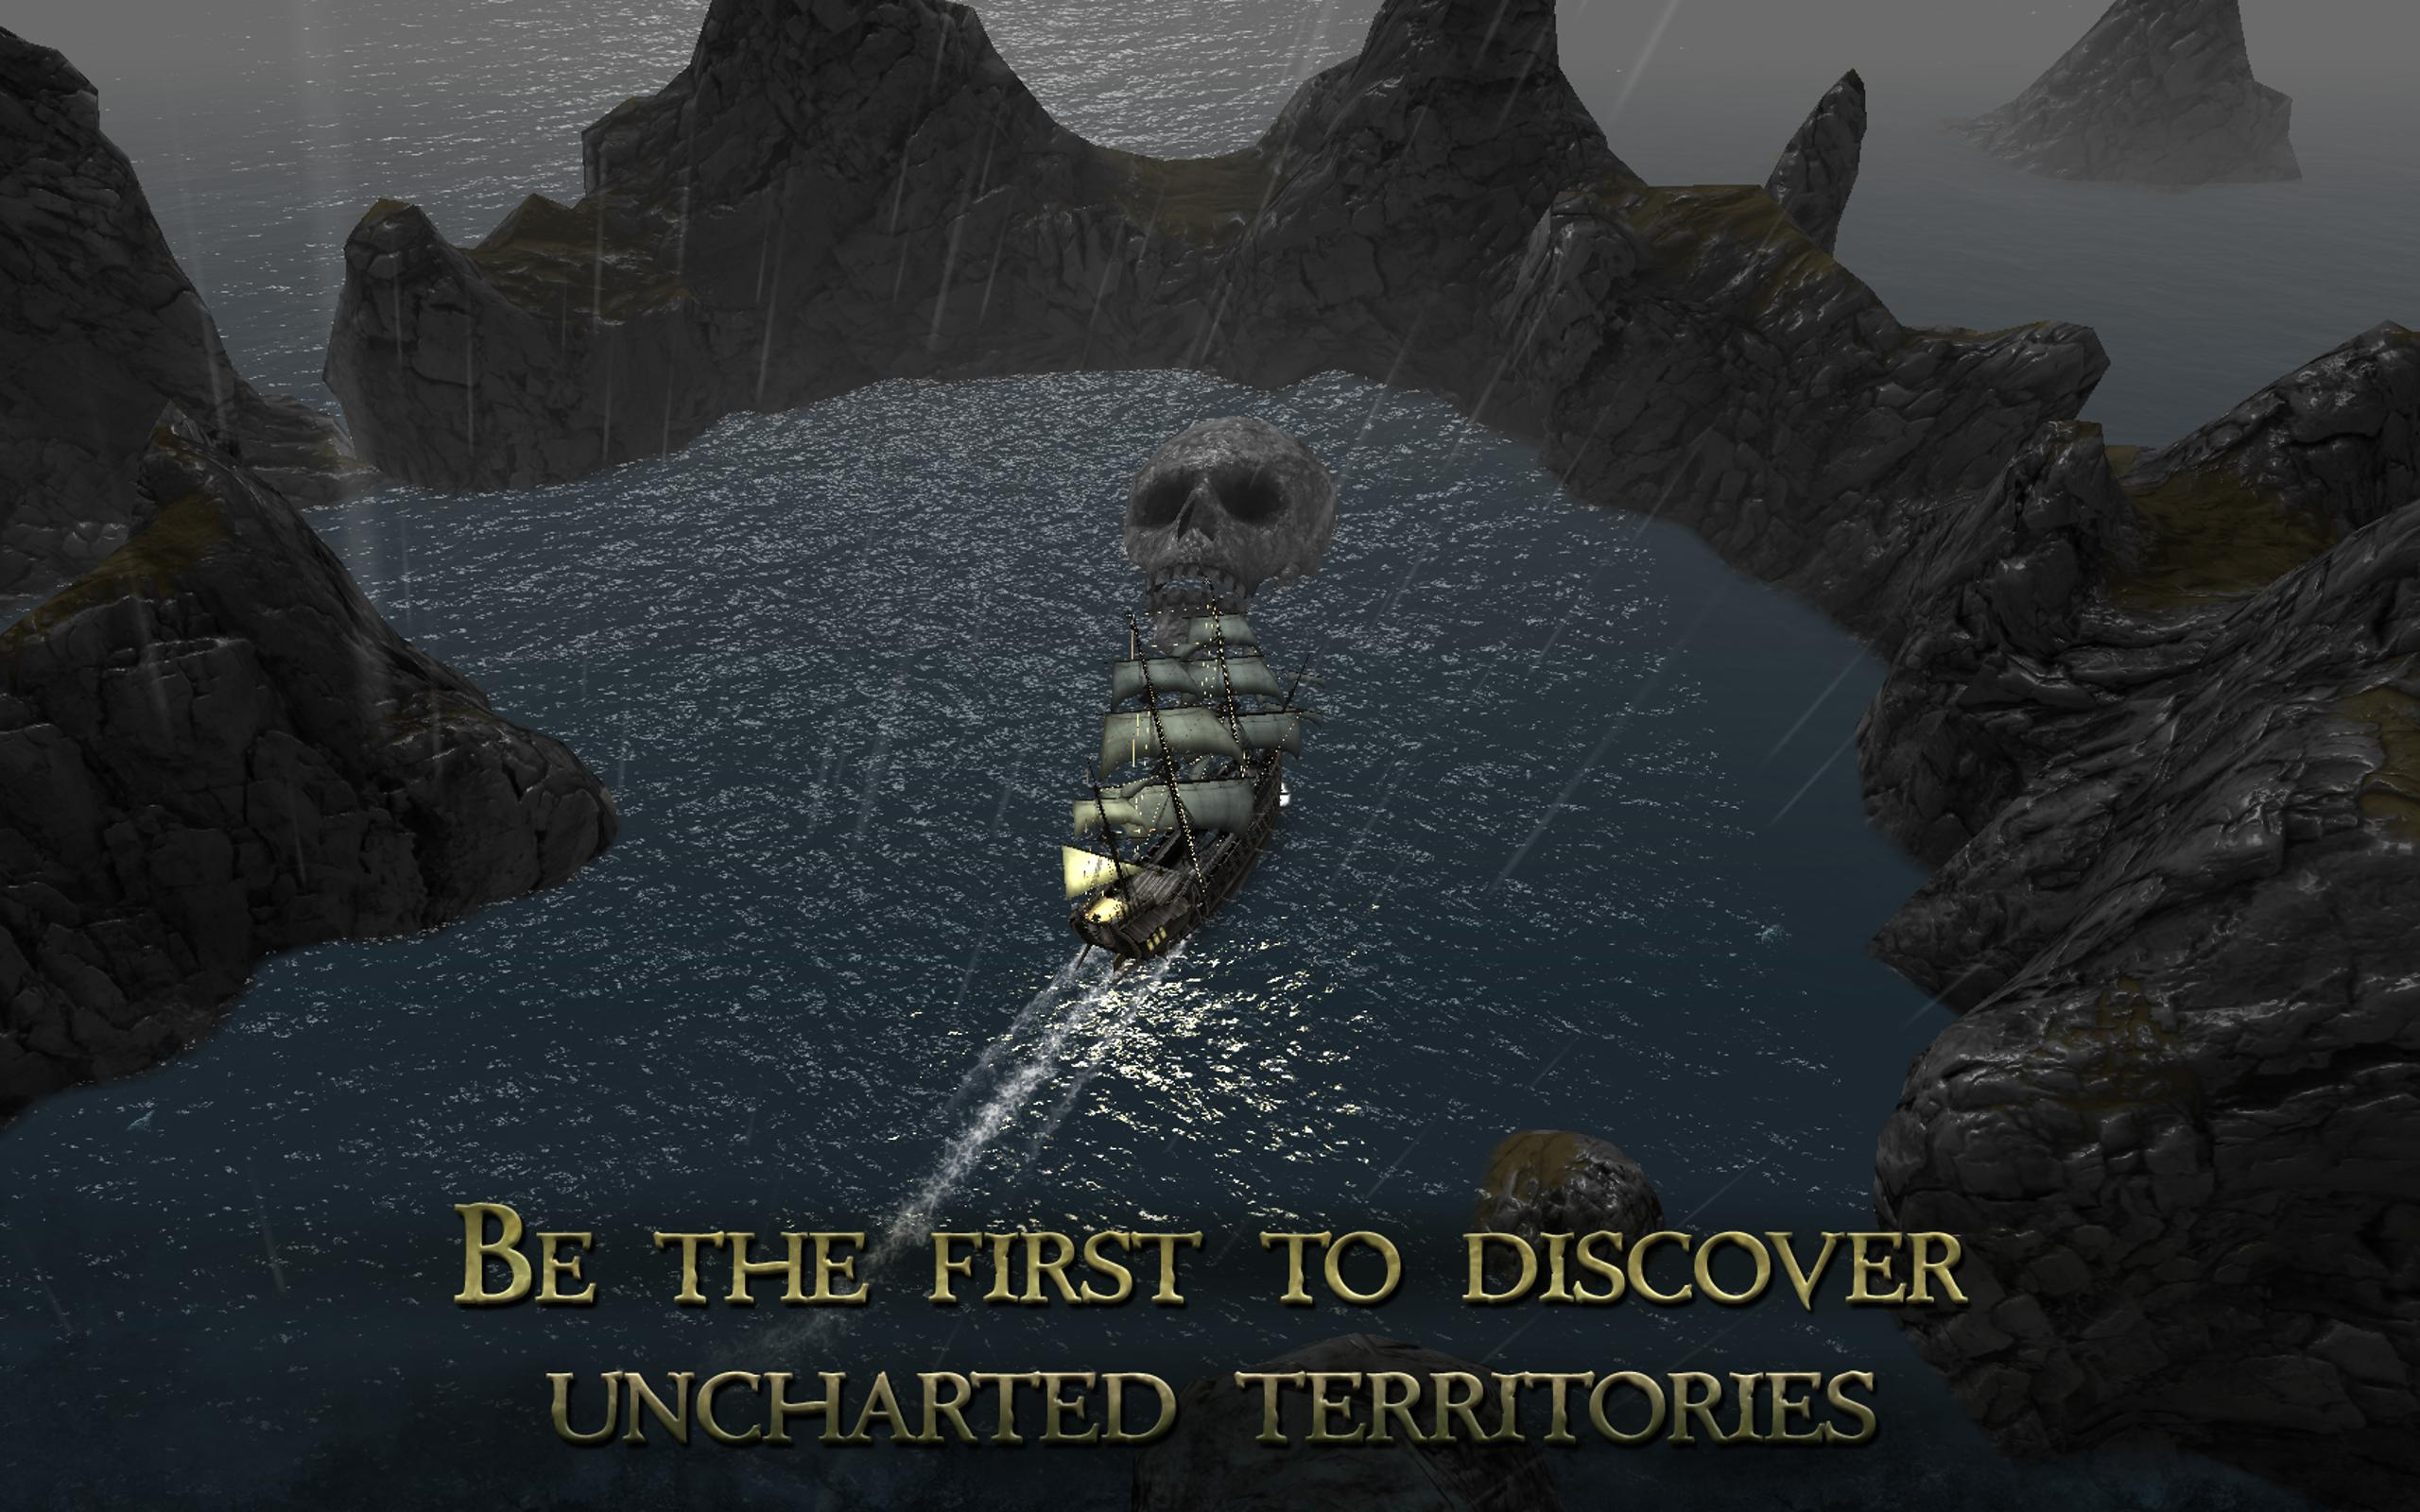 The Pirate Plague Of The Dead For Android Apk Download - roblox territory conquest hack